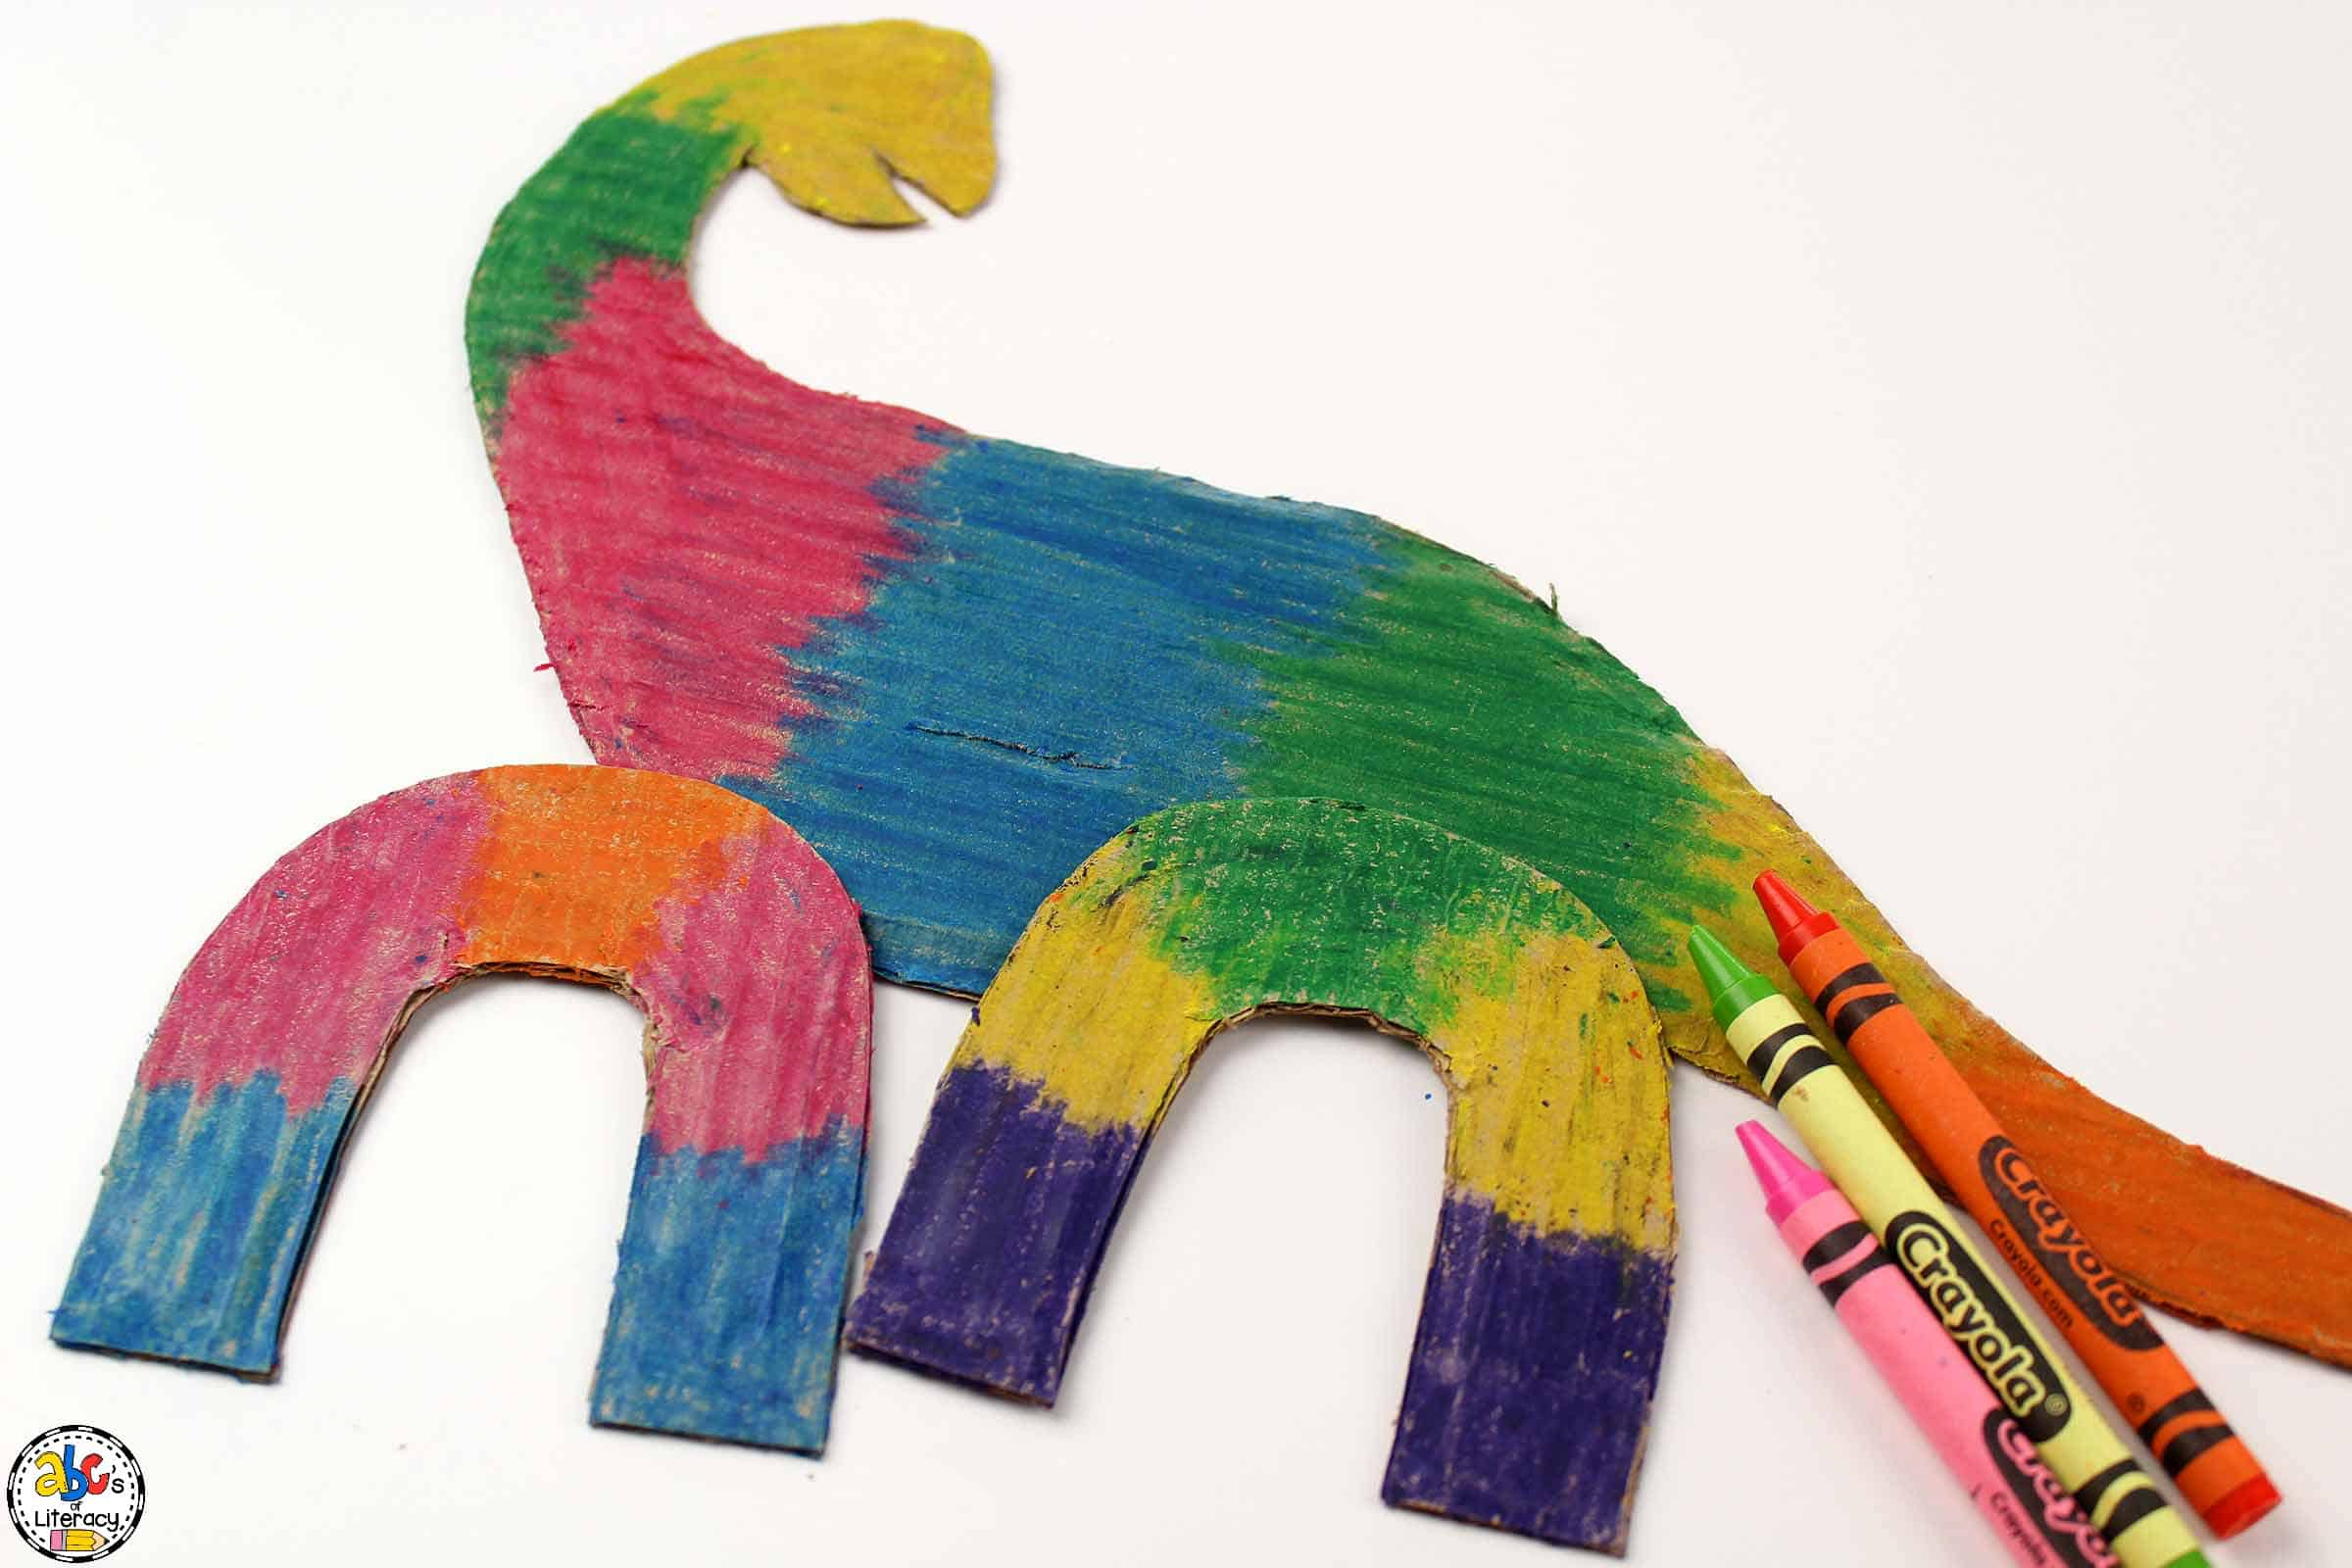 dinosaur scratch art colored in a wide variety of colors